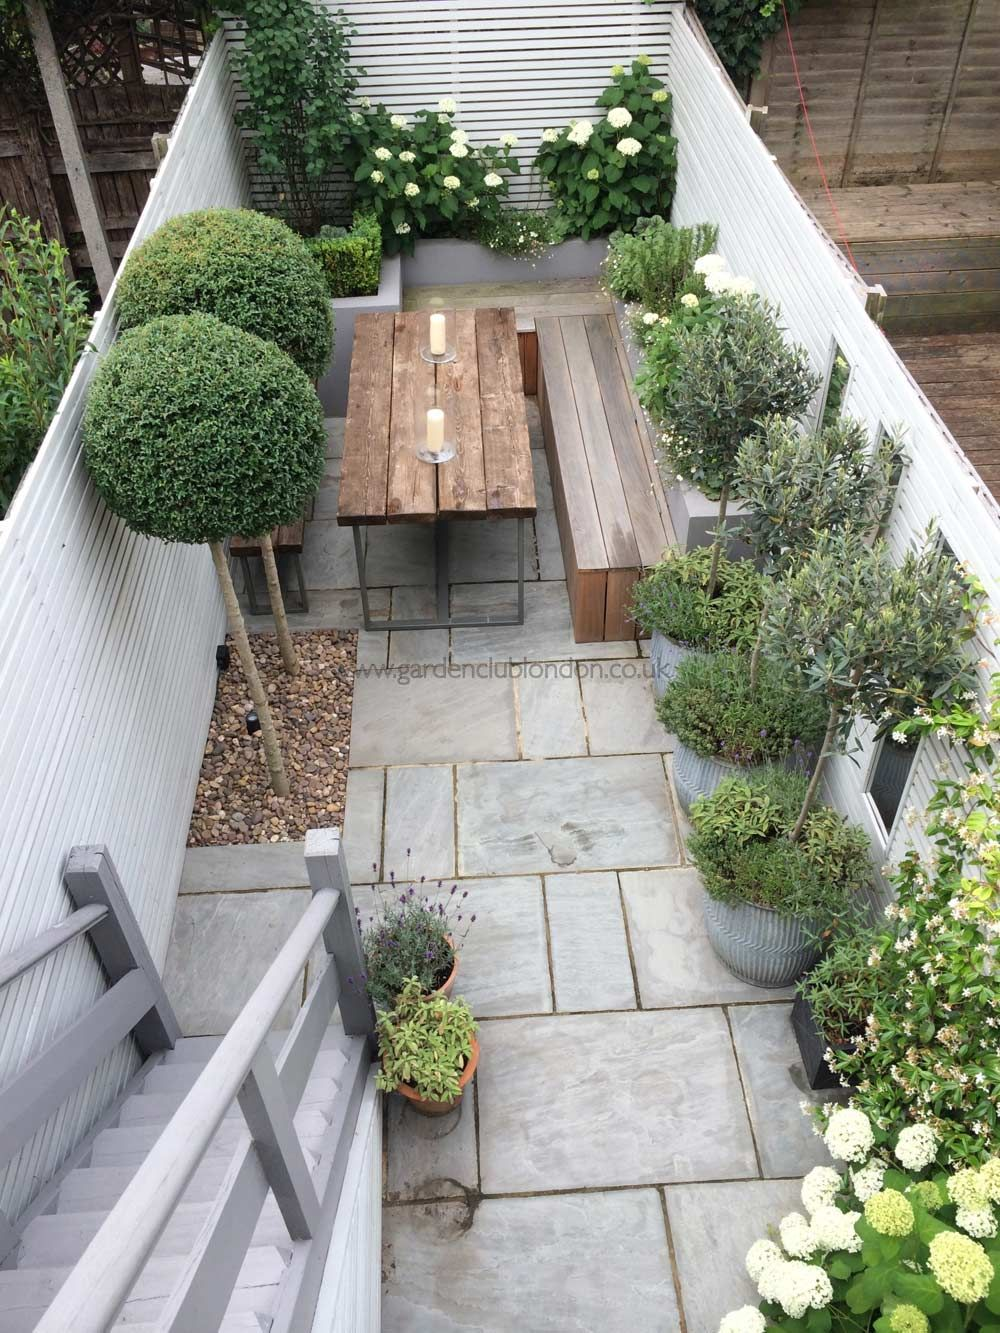 Merveilleux Slim Rear Contemporary Garden Design London